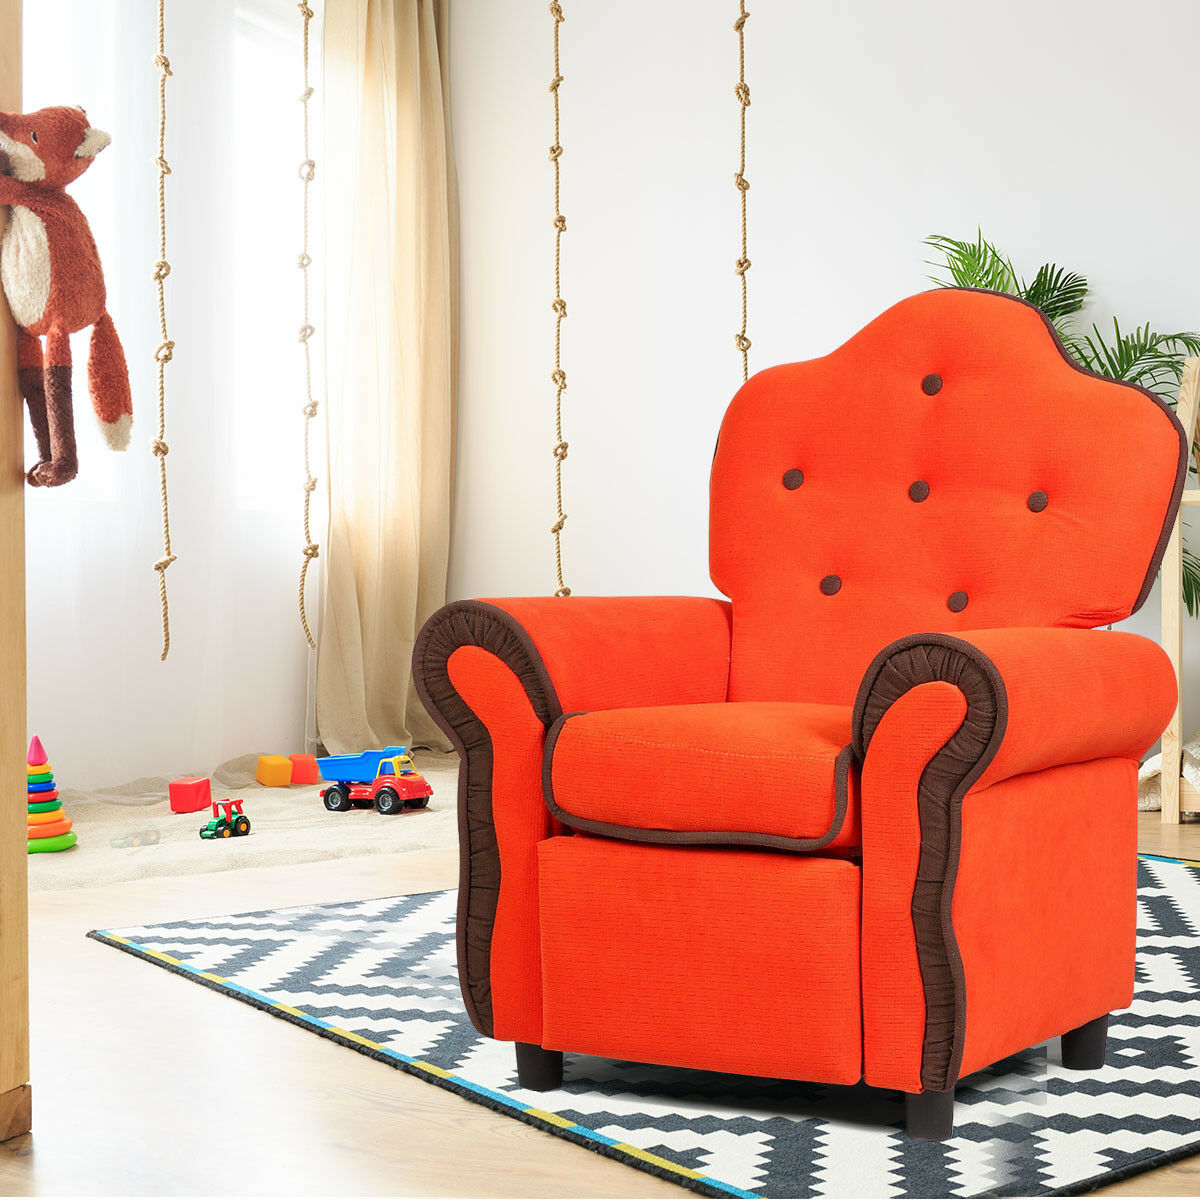 Details about Children Recliner Kids Sofa Chair Couch Living Room Furniture  Black Pink Orange